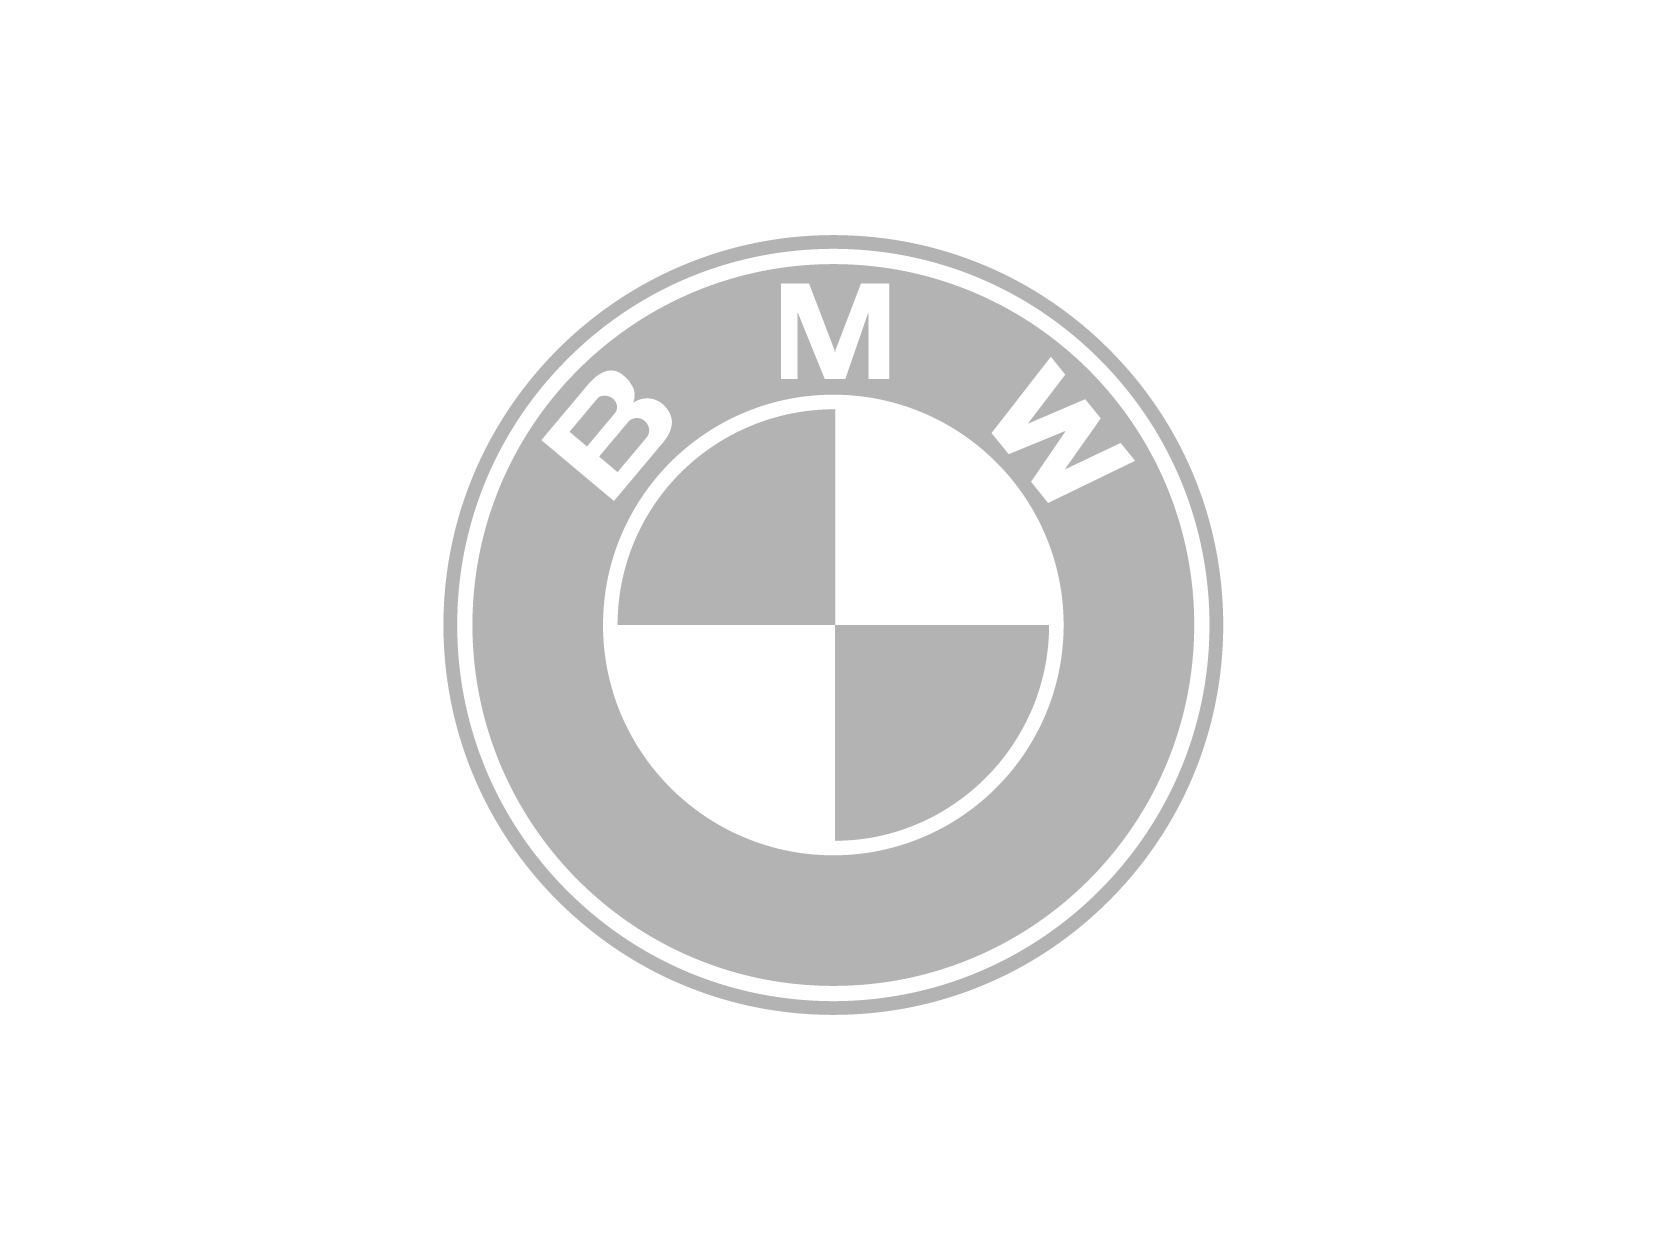 download-BMW-LOGO-Car_company-PNG-transparent-images-transparent-backgrounds-PNGRIVER-COM-grey-bmw-logo-5752-0.png